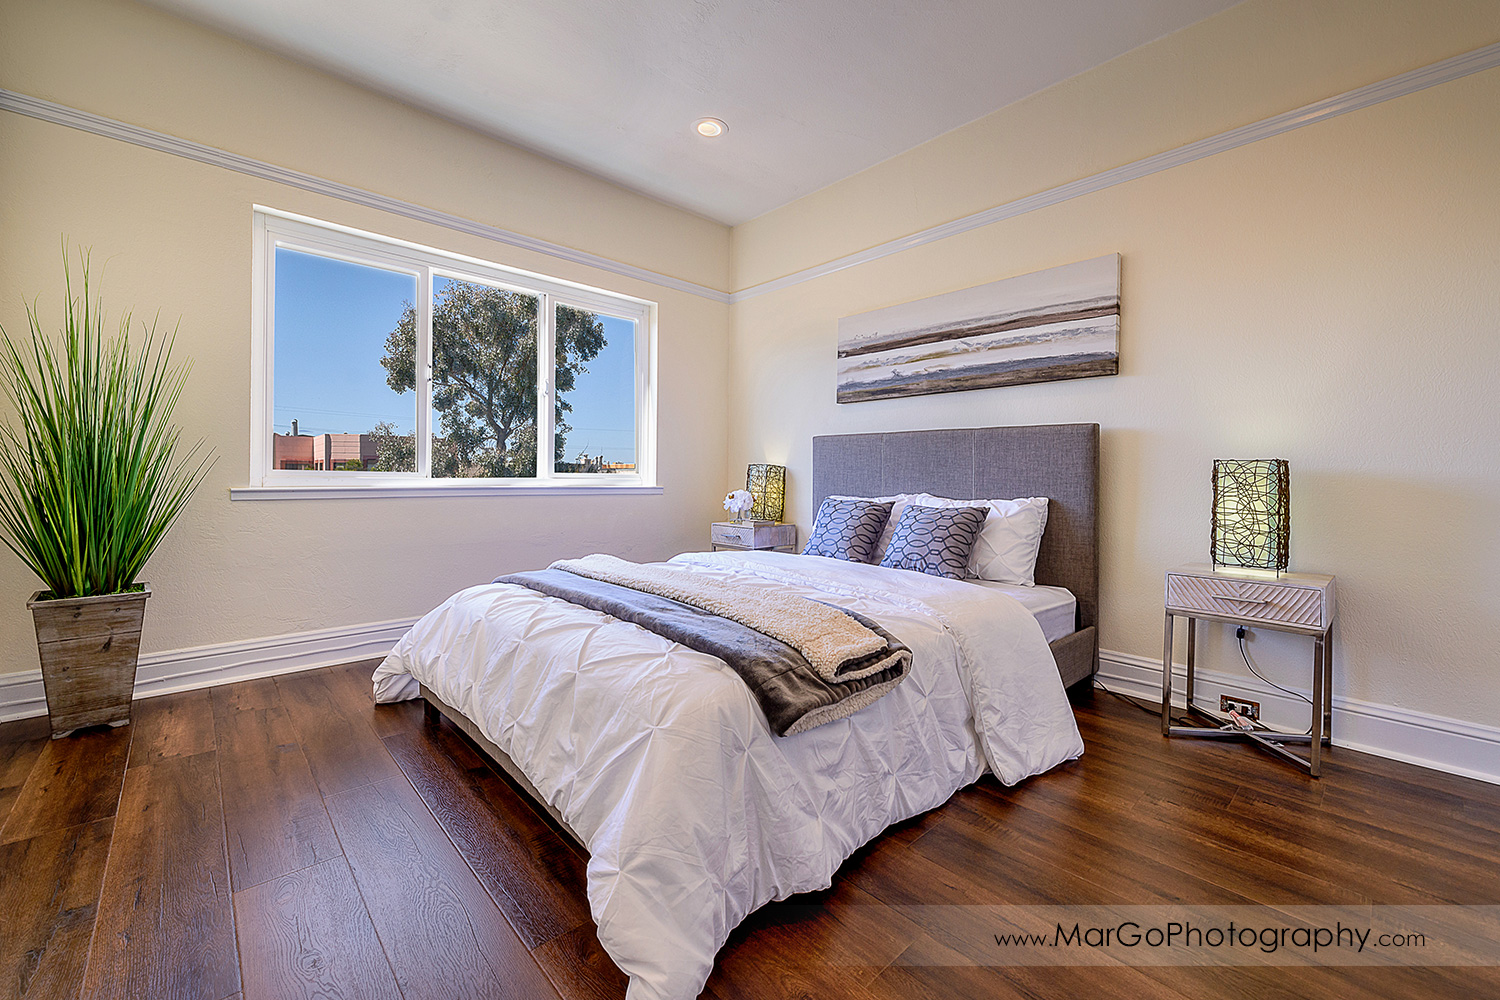 San Francisco house bedroom with window view - real estate photography